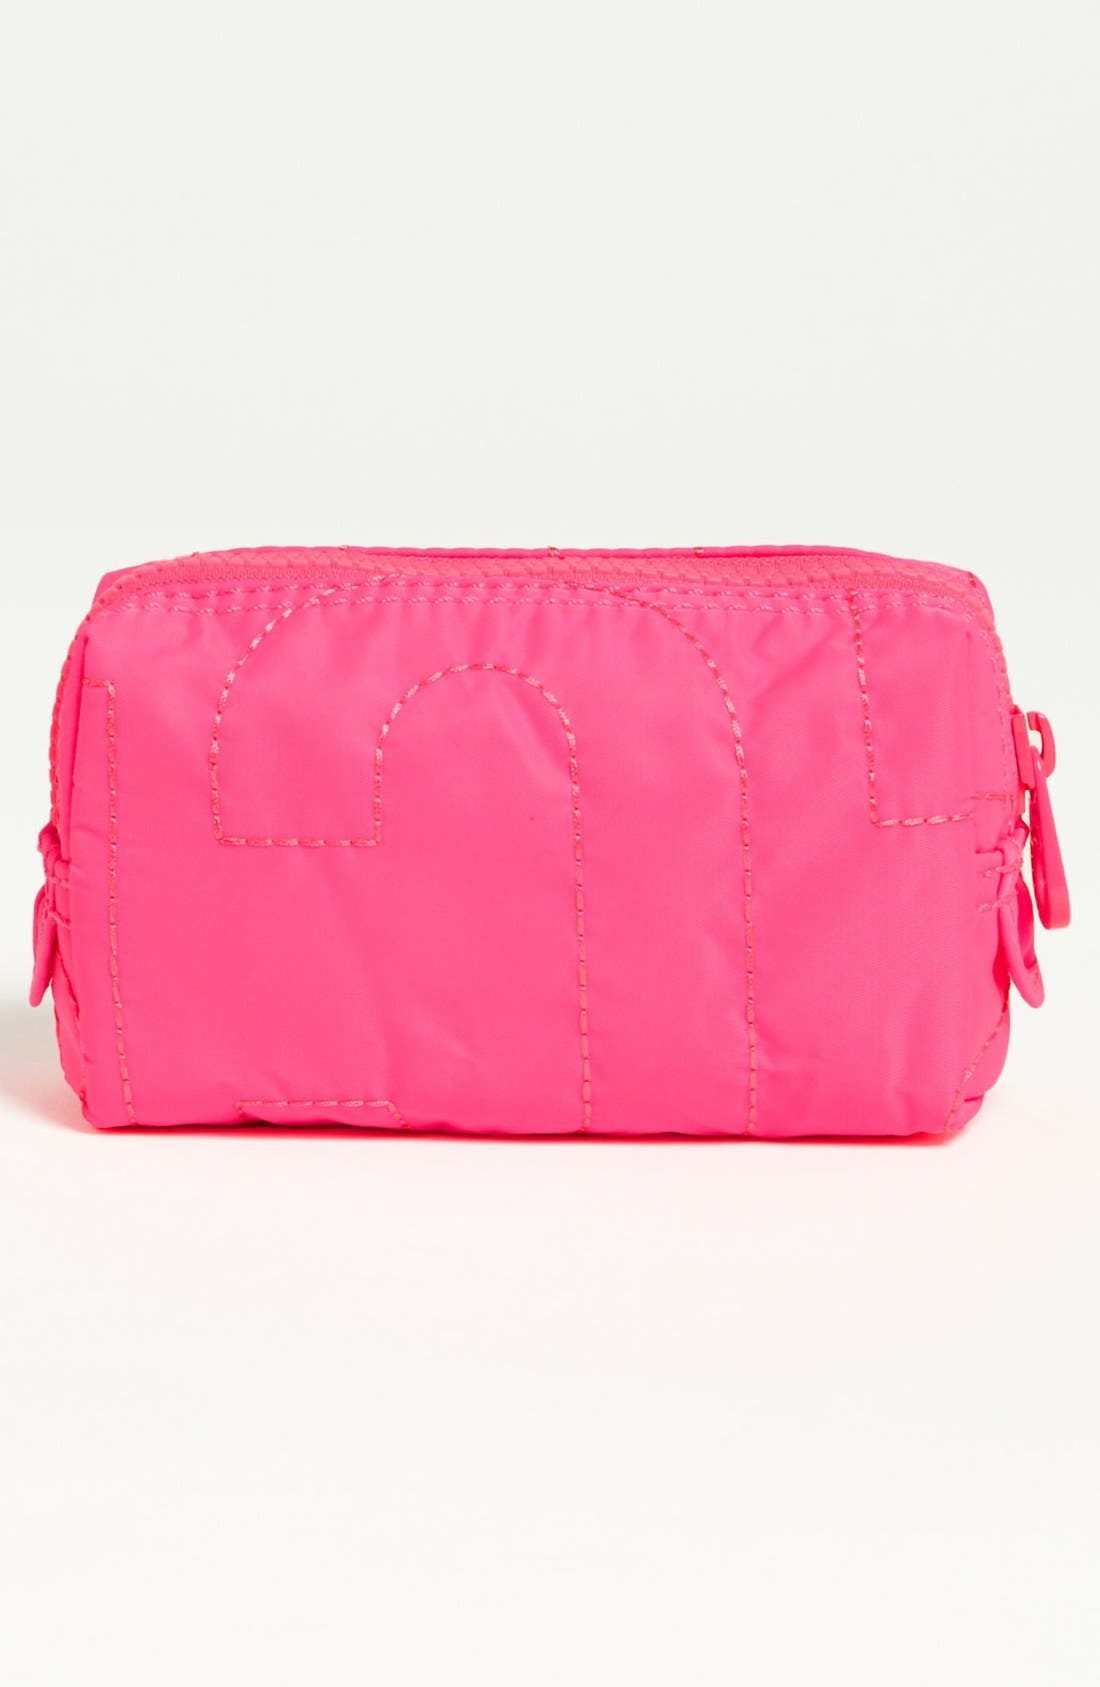 MARC BY MARC JACOBS 'Pretty Nylon' Cosmetics Case,                             Alternate thumbnail 4, color,                             676